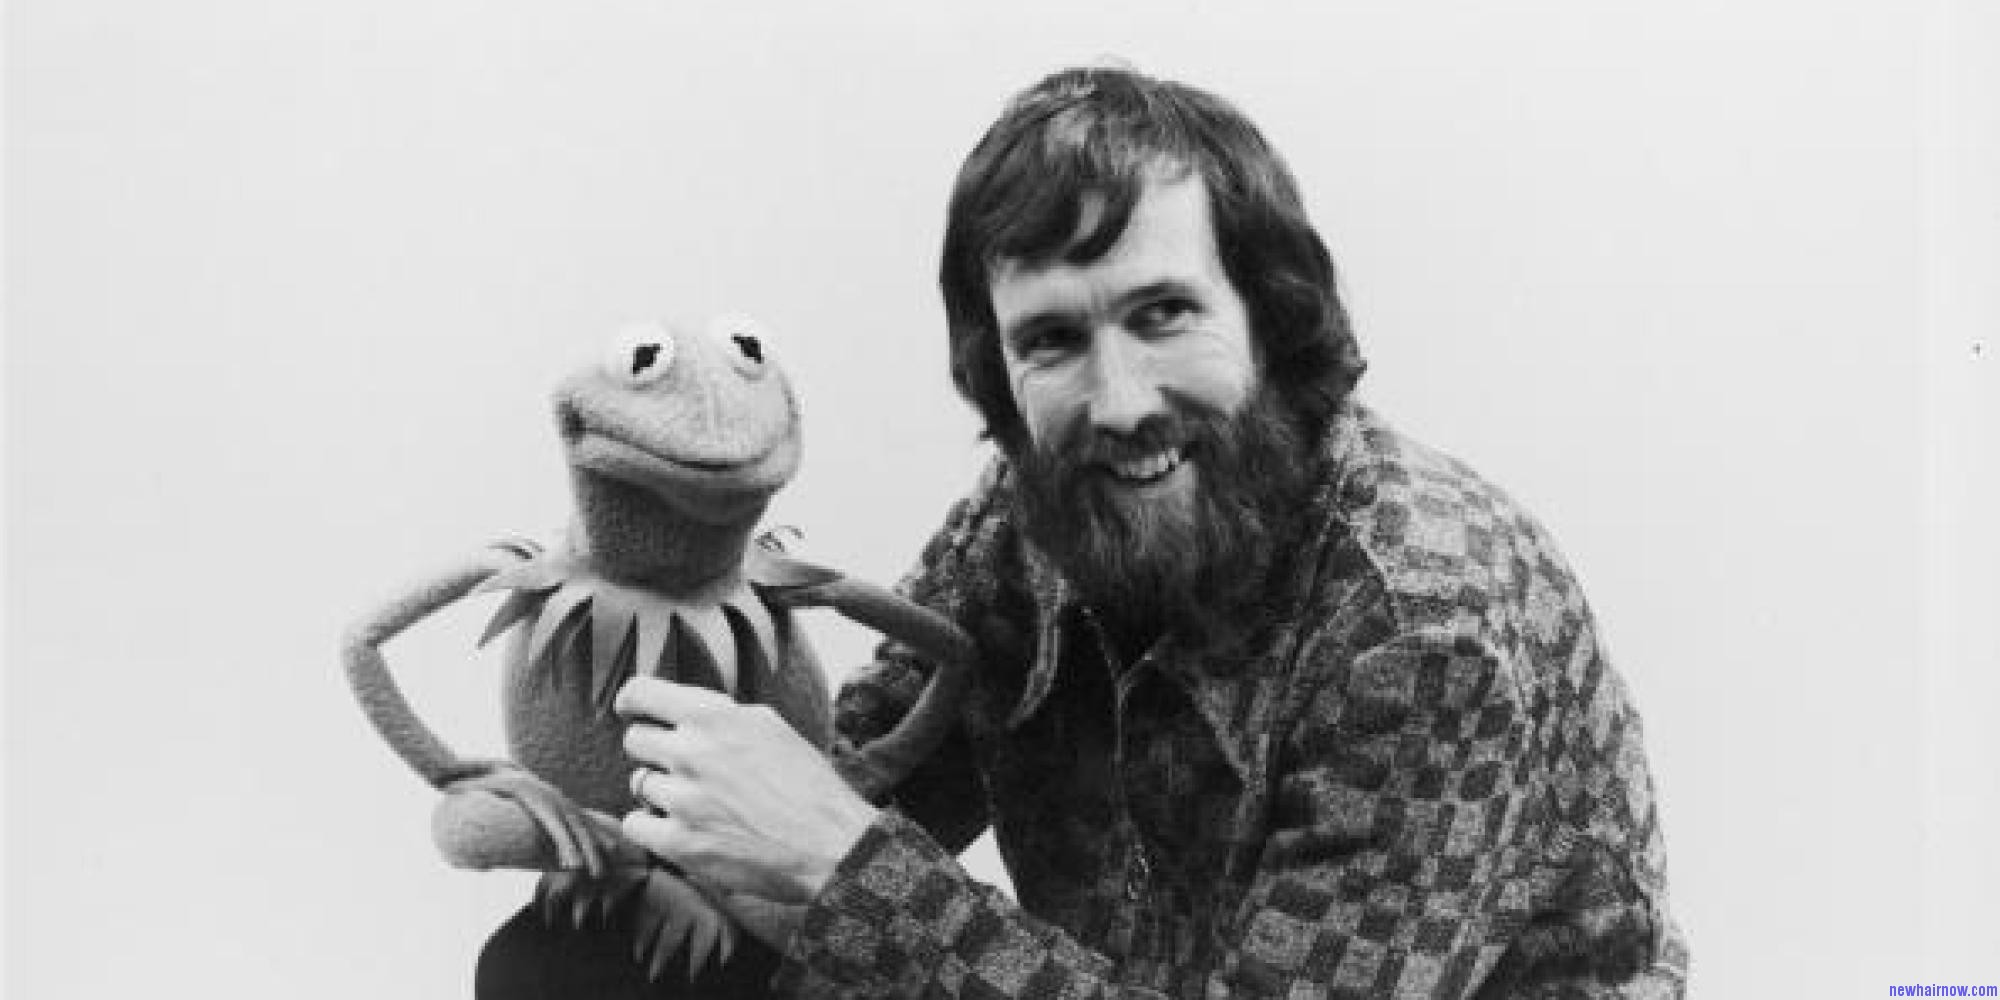 Portrait Of Jim Henson With Kermit The Frog